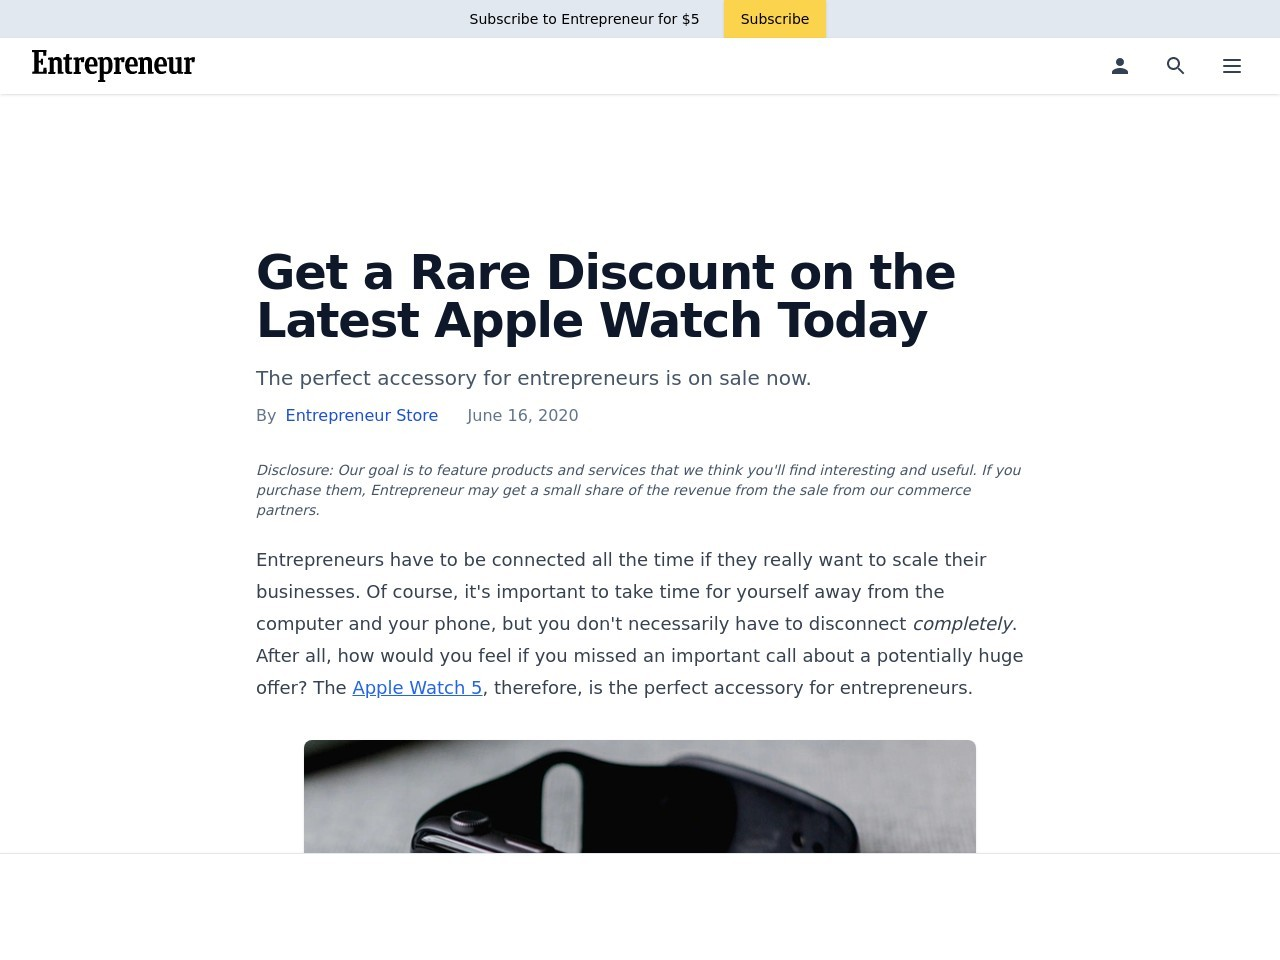 Get a Rare Discount on the Latest Apple Watch Today